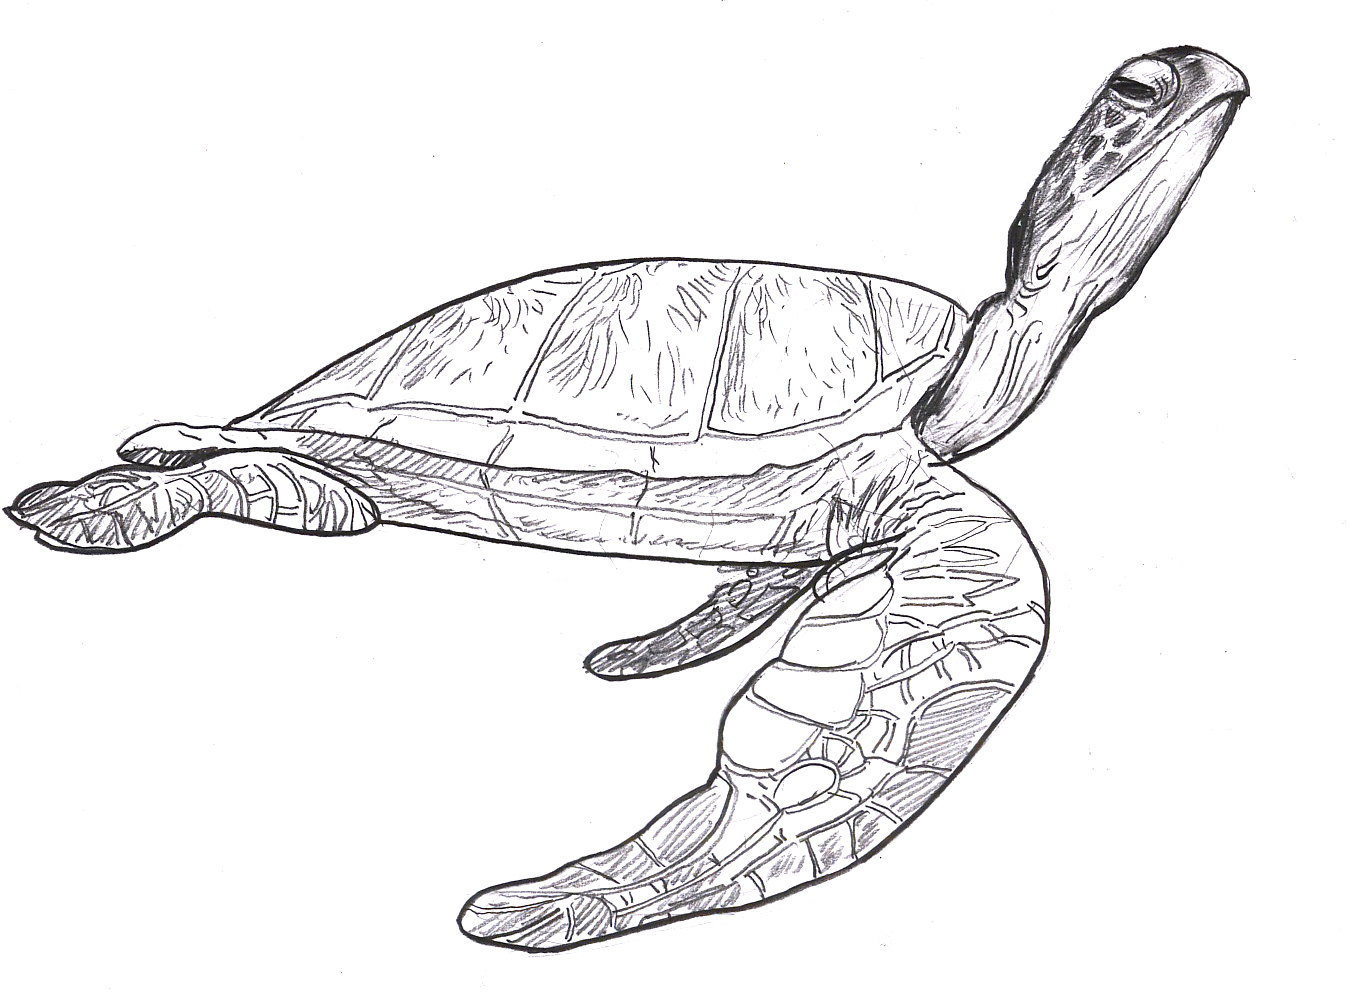 Sea Turtle Sketches http://stevebrodner.com/2012/06/25/sea-turtles/sea-turtle-2/